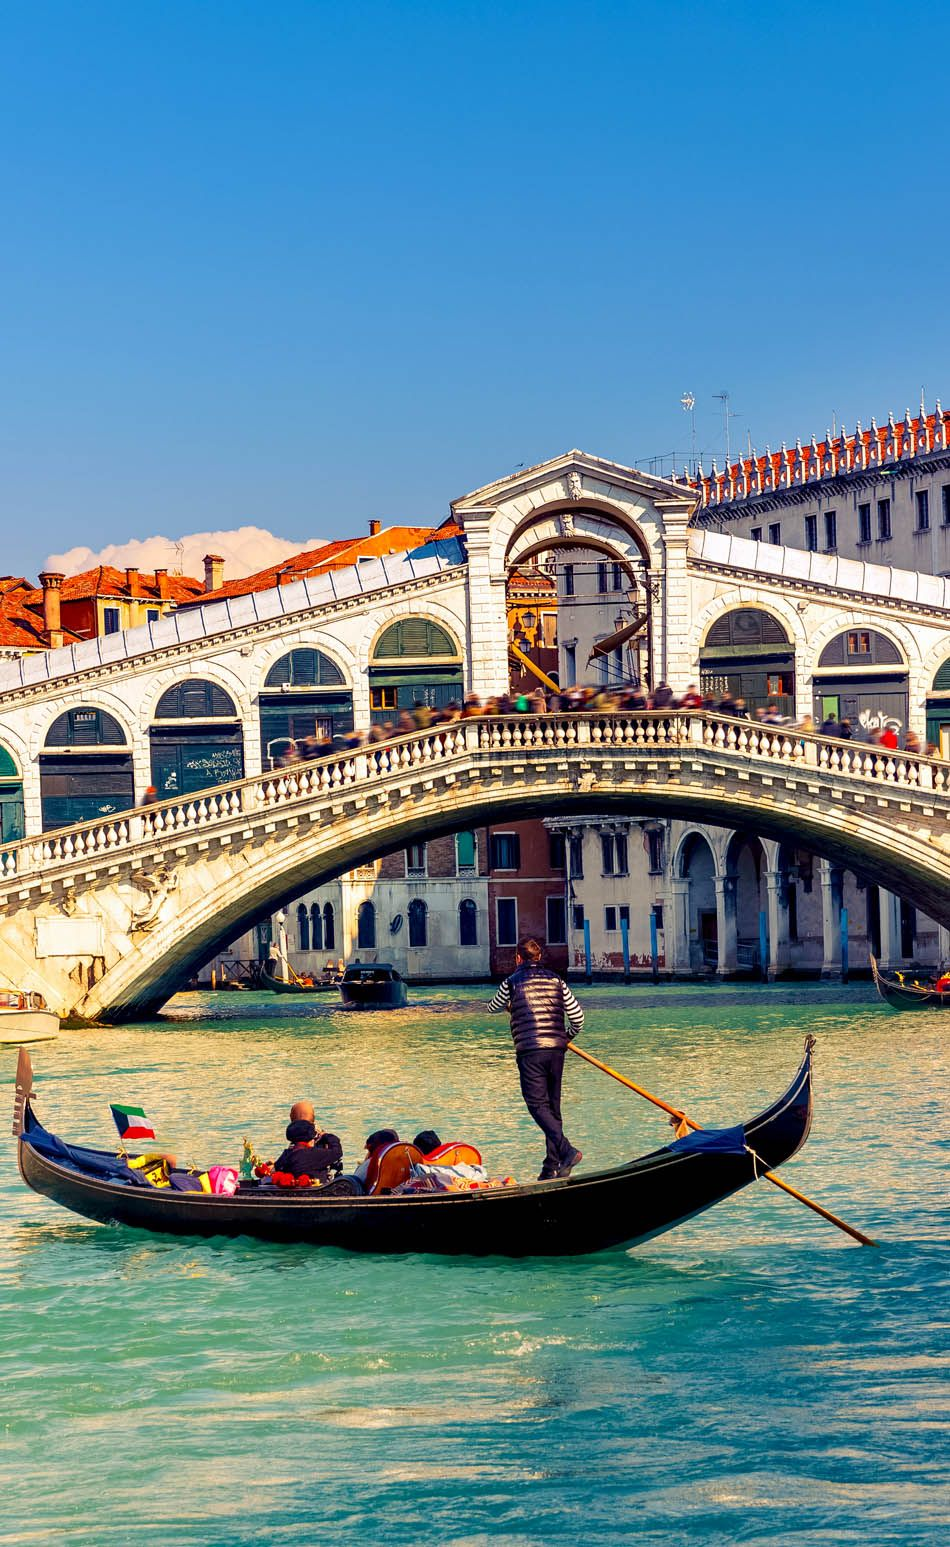 10 Amazing Photos of Venice, the City Blessed with Eternal Love